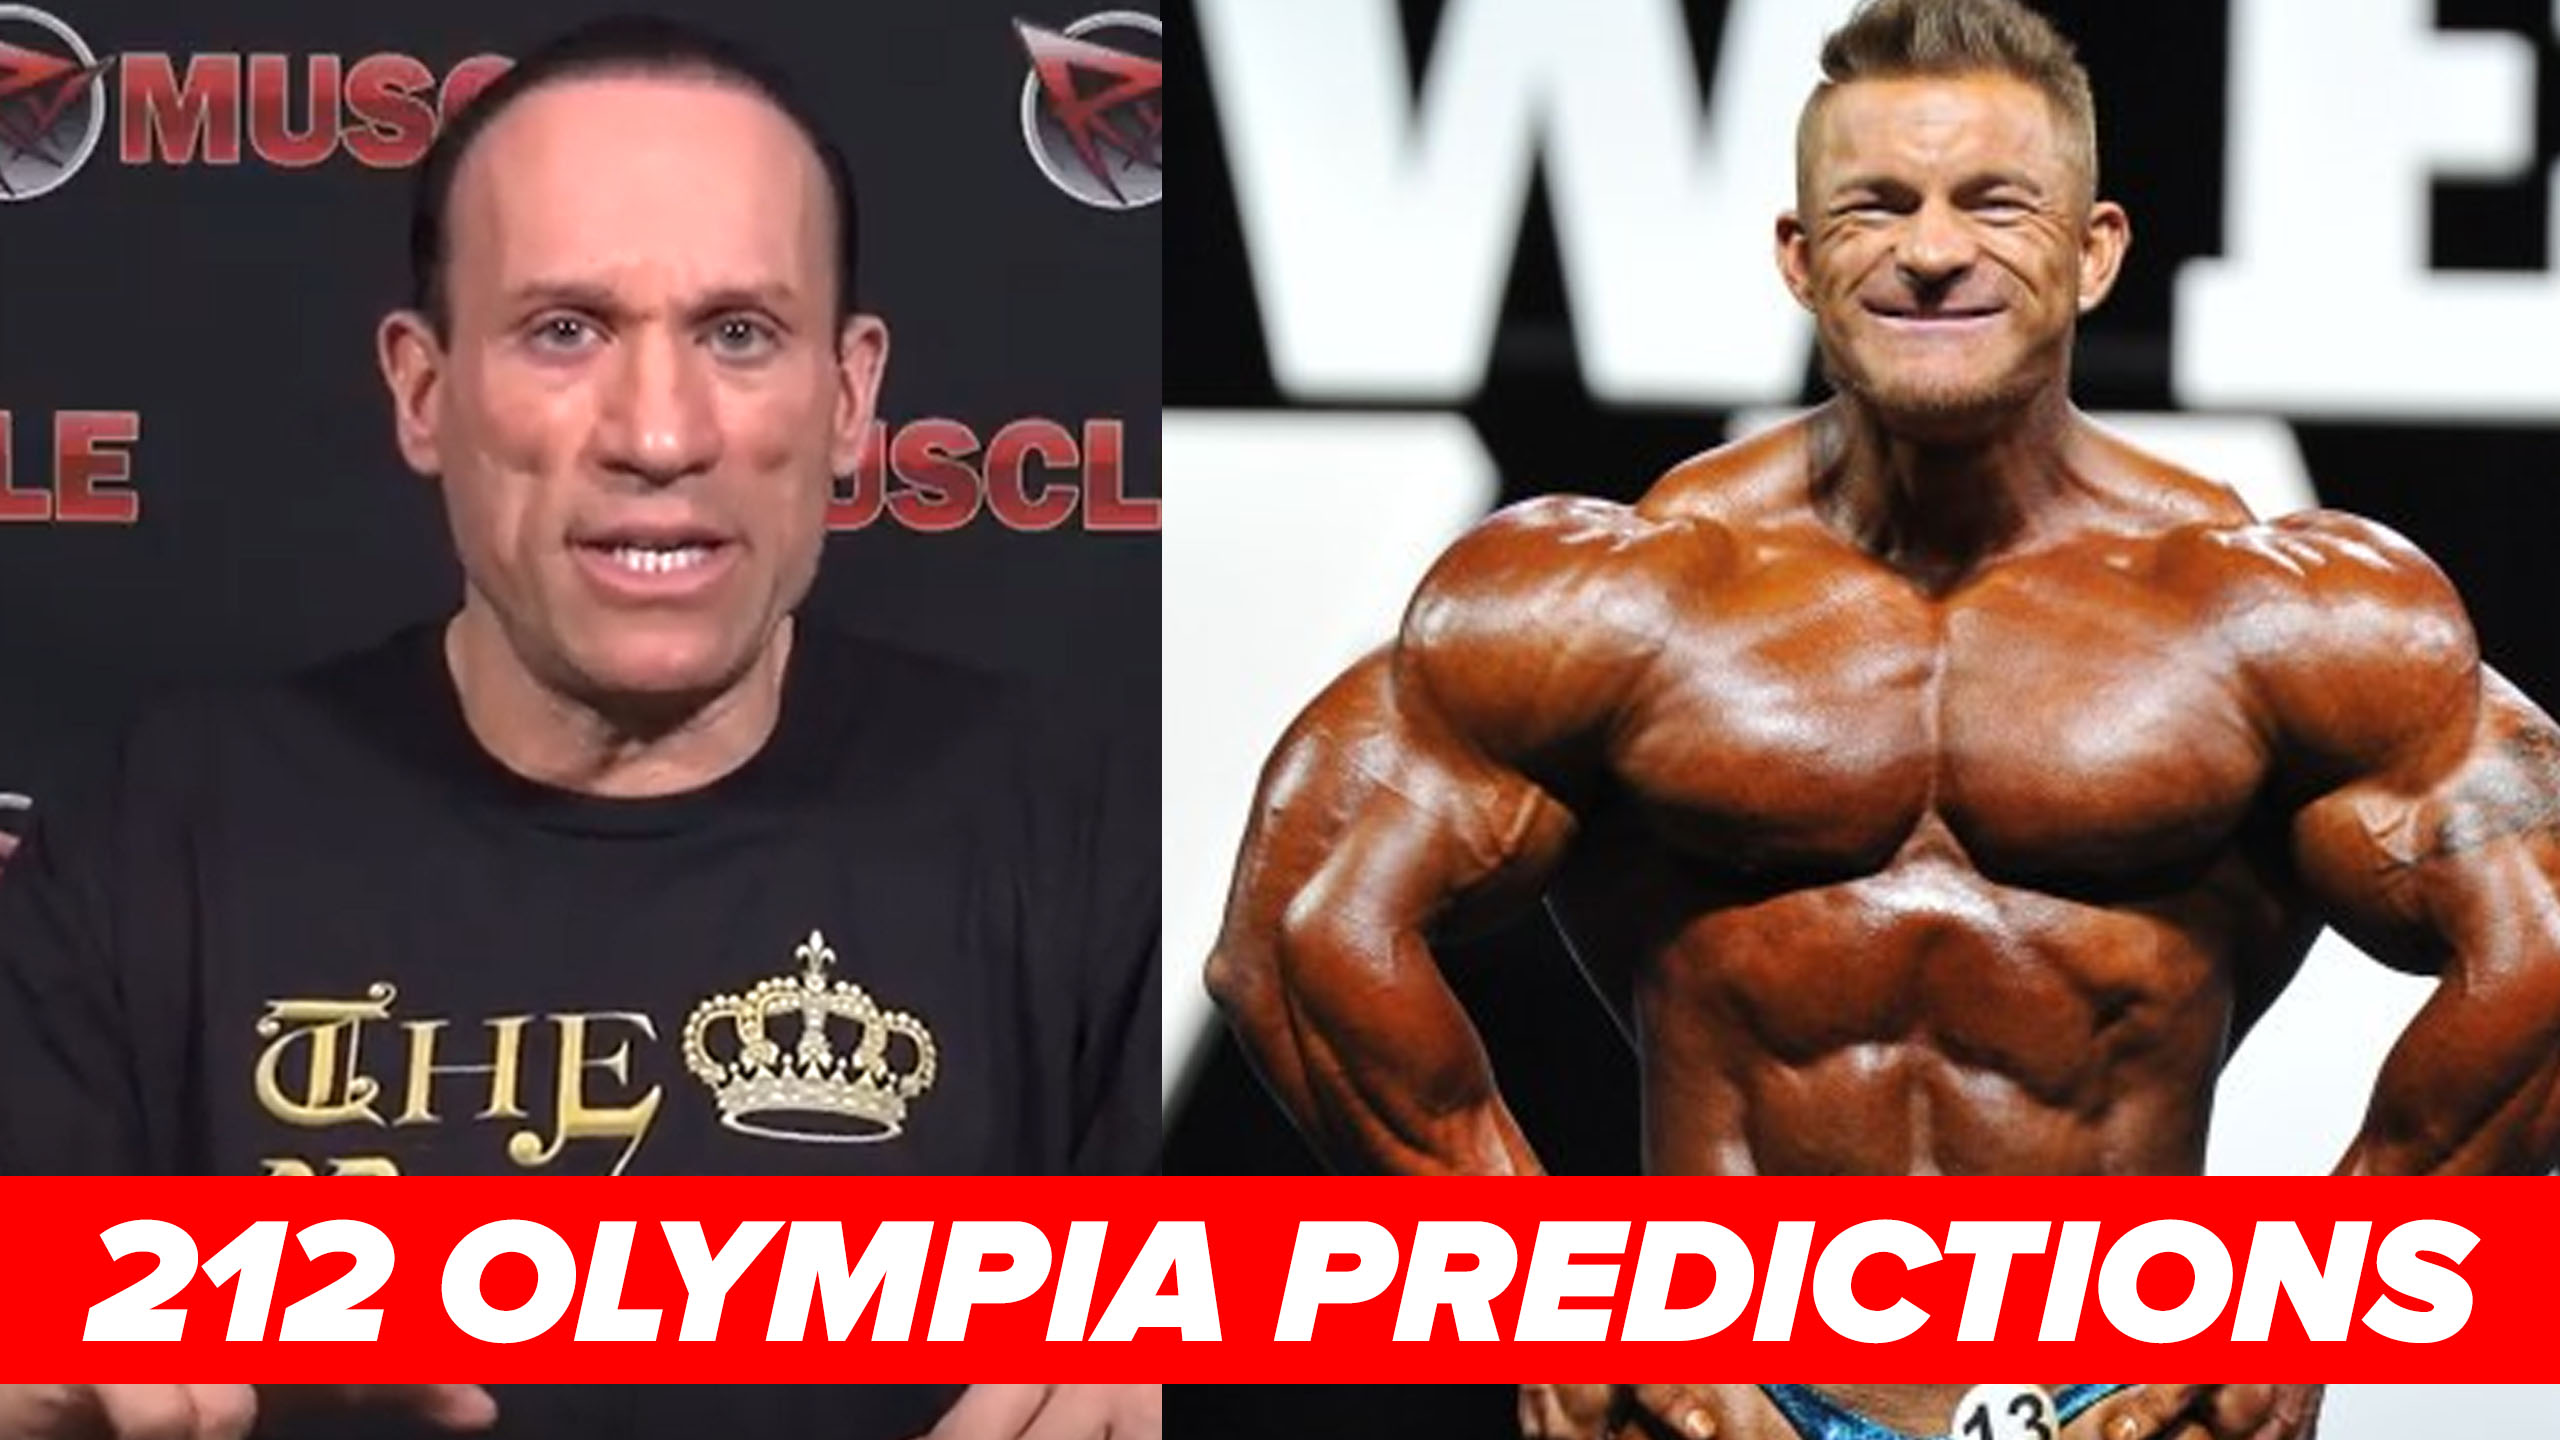 212 olympia predictions